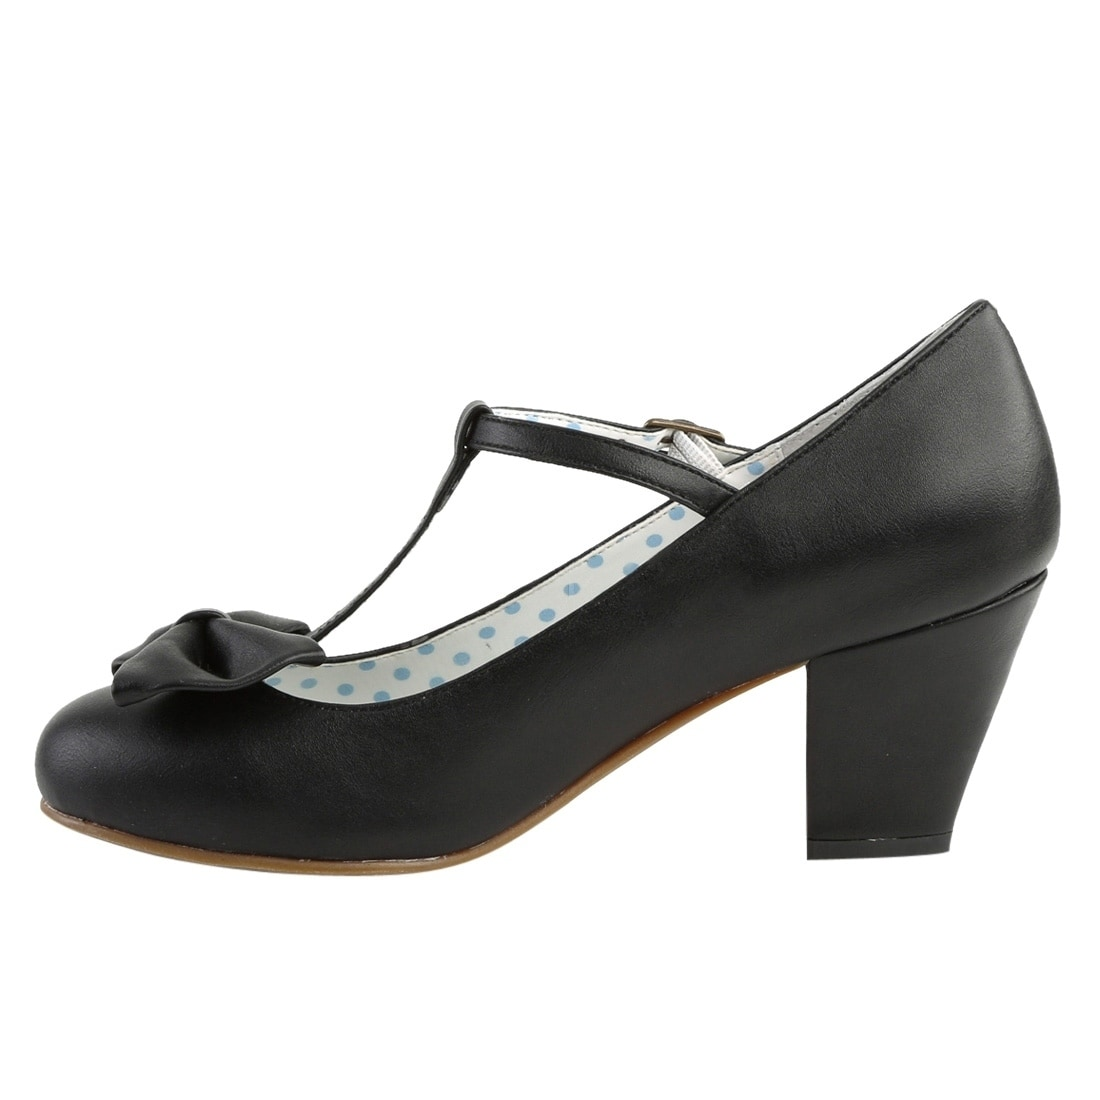 84b33dcfc5d Shop Pin Up Couture WIGGLE-50 Women s Bow Buckle T-Strap Cuben Heel Pumps -  Free Shipping Today - Overstock - 19219138